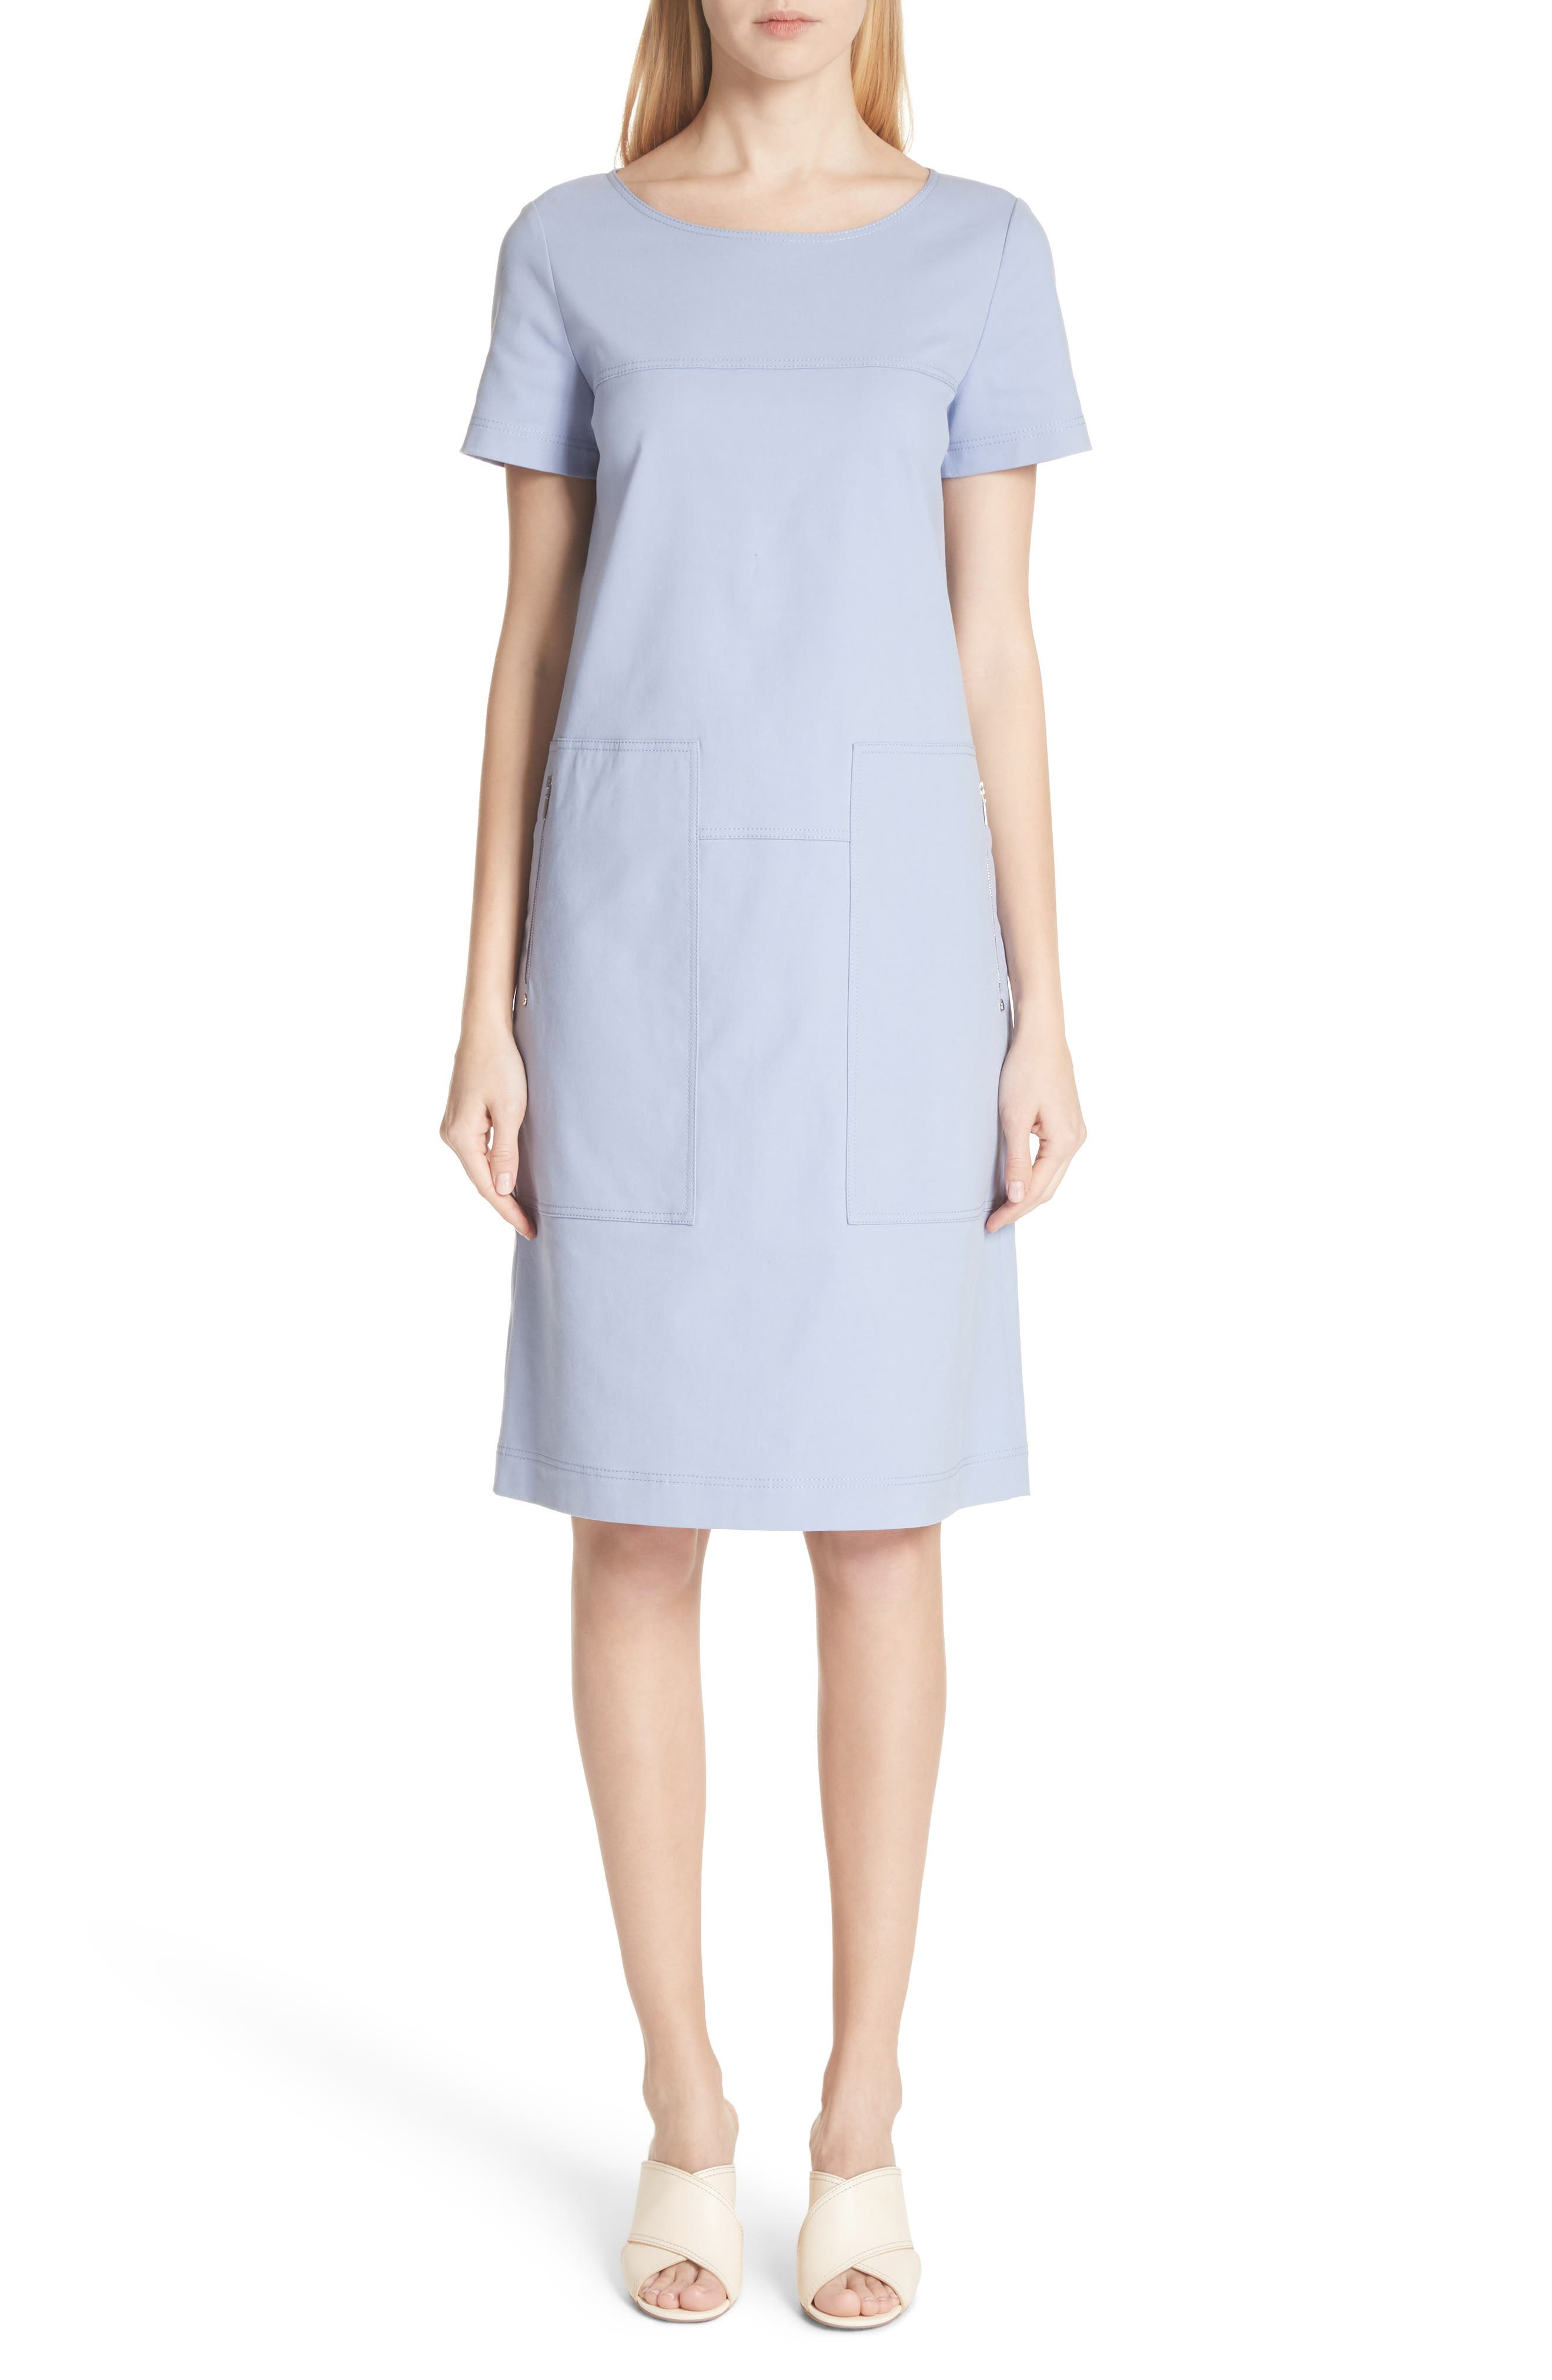 Farah Catalina Stretch Canvas Dress,                         Main,                         color, Periwinkle